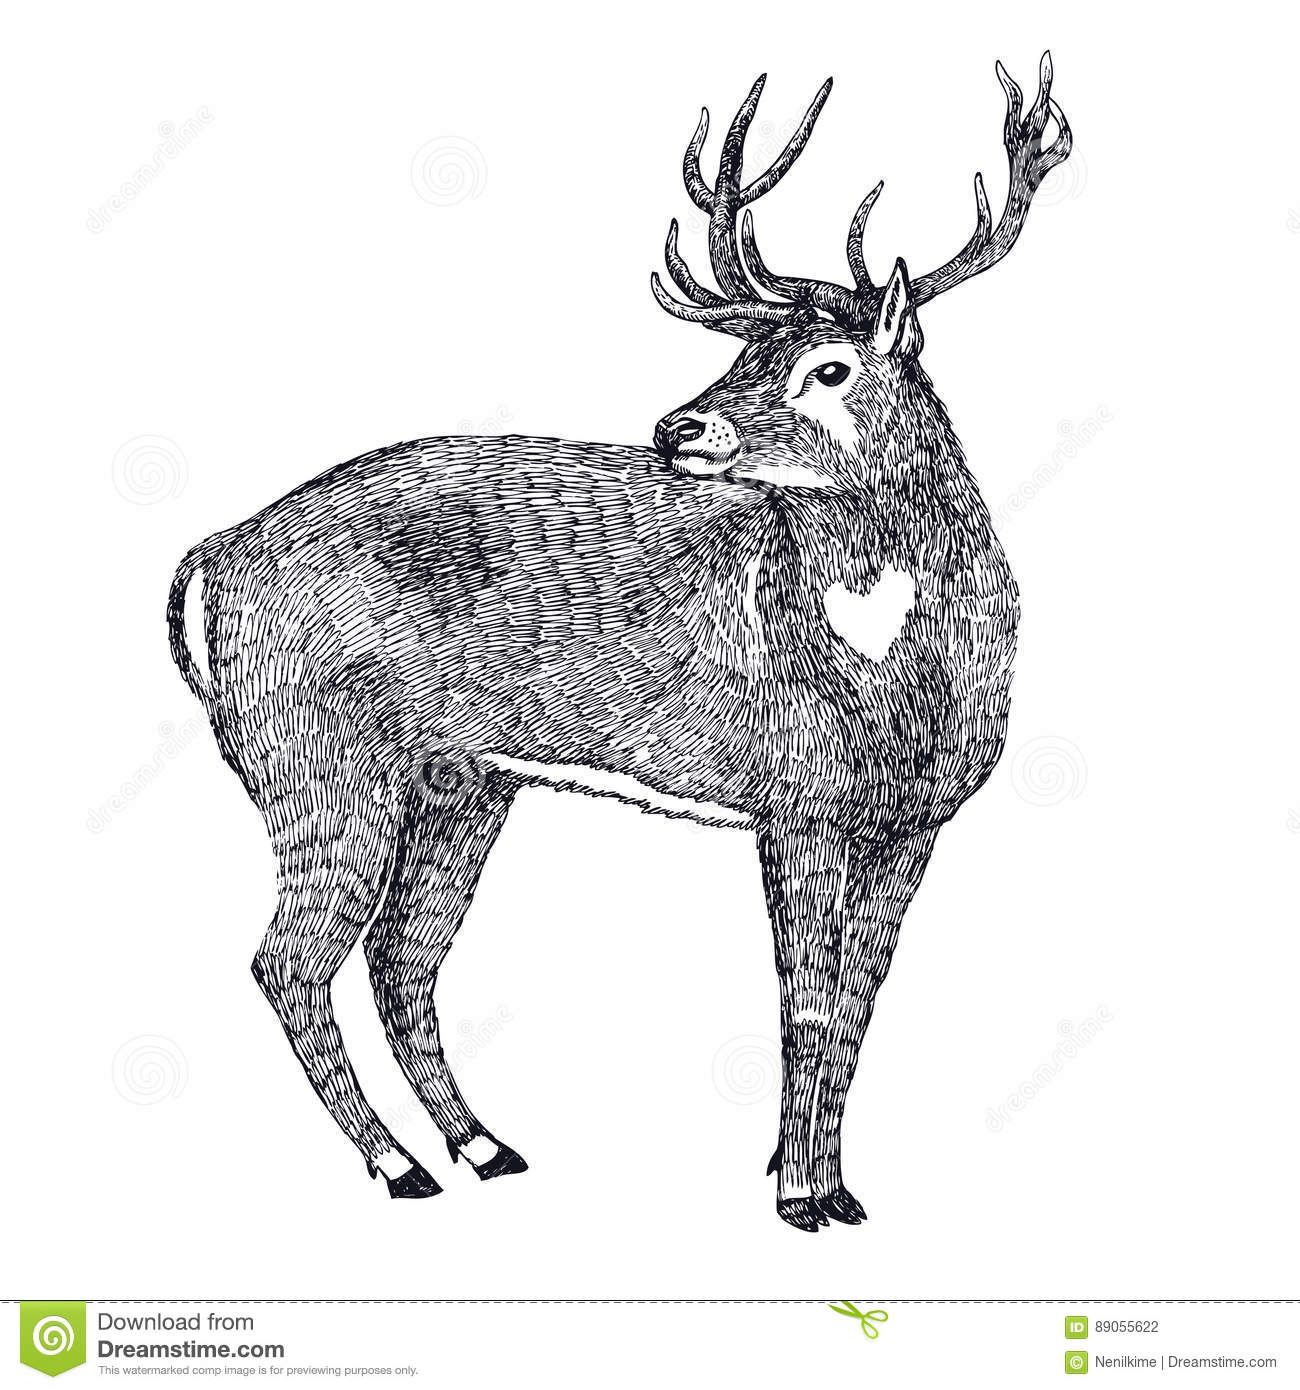 Deer Sketch Style Hand Drawing Stock Vector - Illustration of sketch ...